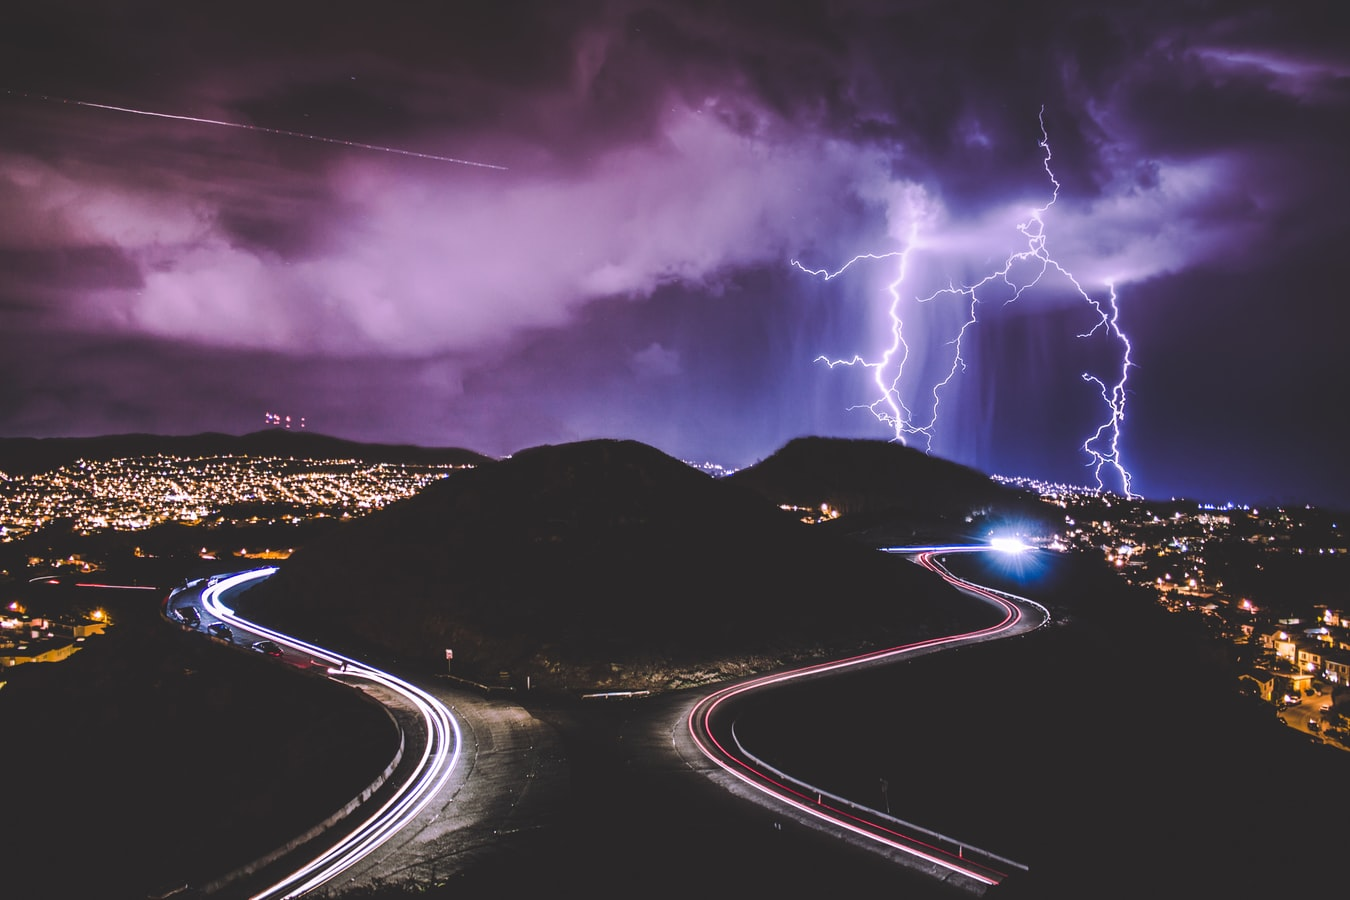 How To Photograph Lightning (With Awesome Examples)